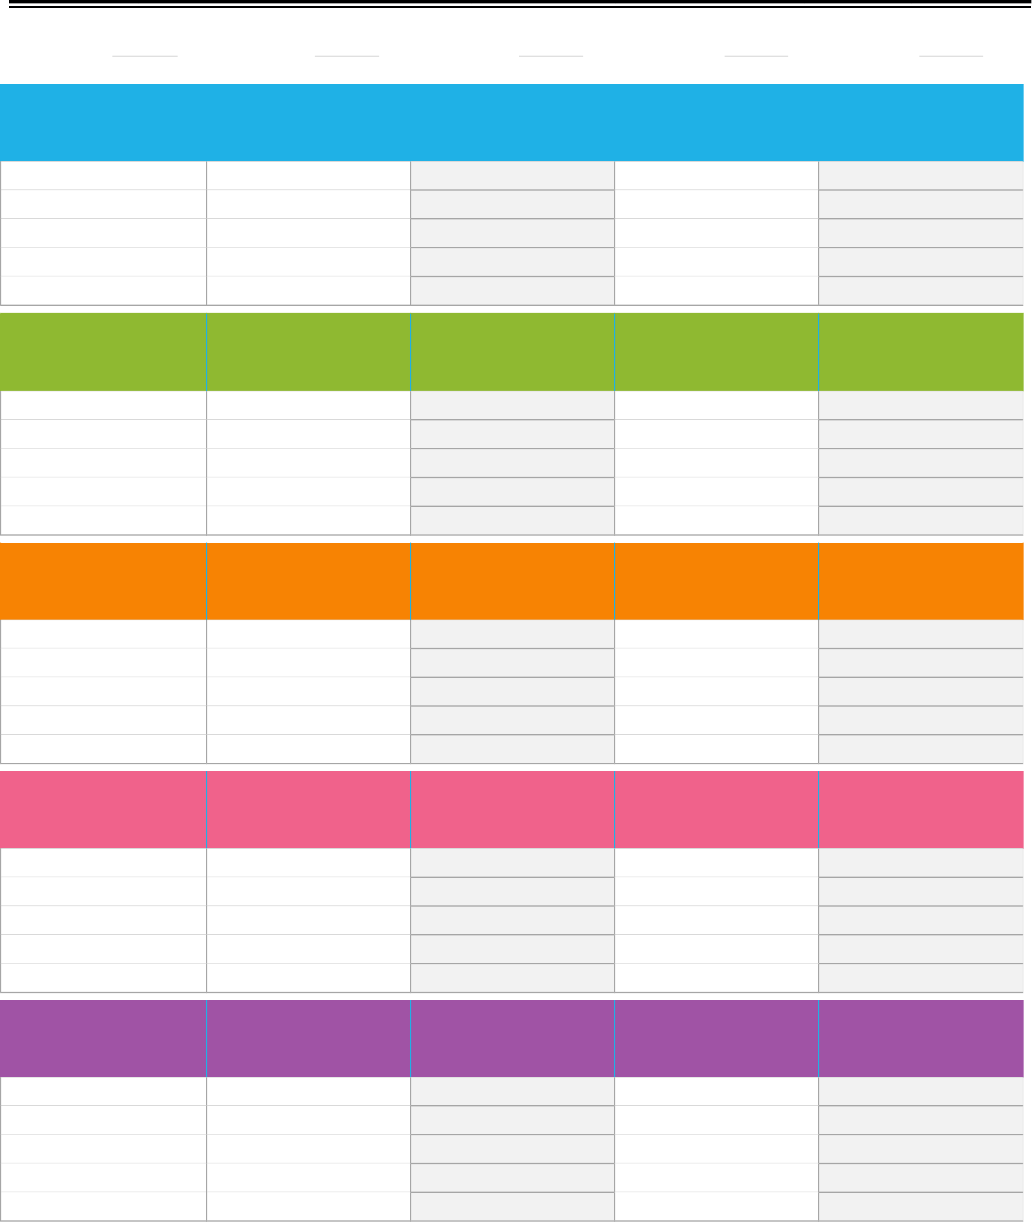 the weekly assignment calendar template can help you make a weekly assignment calendar template